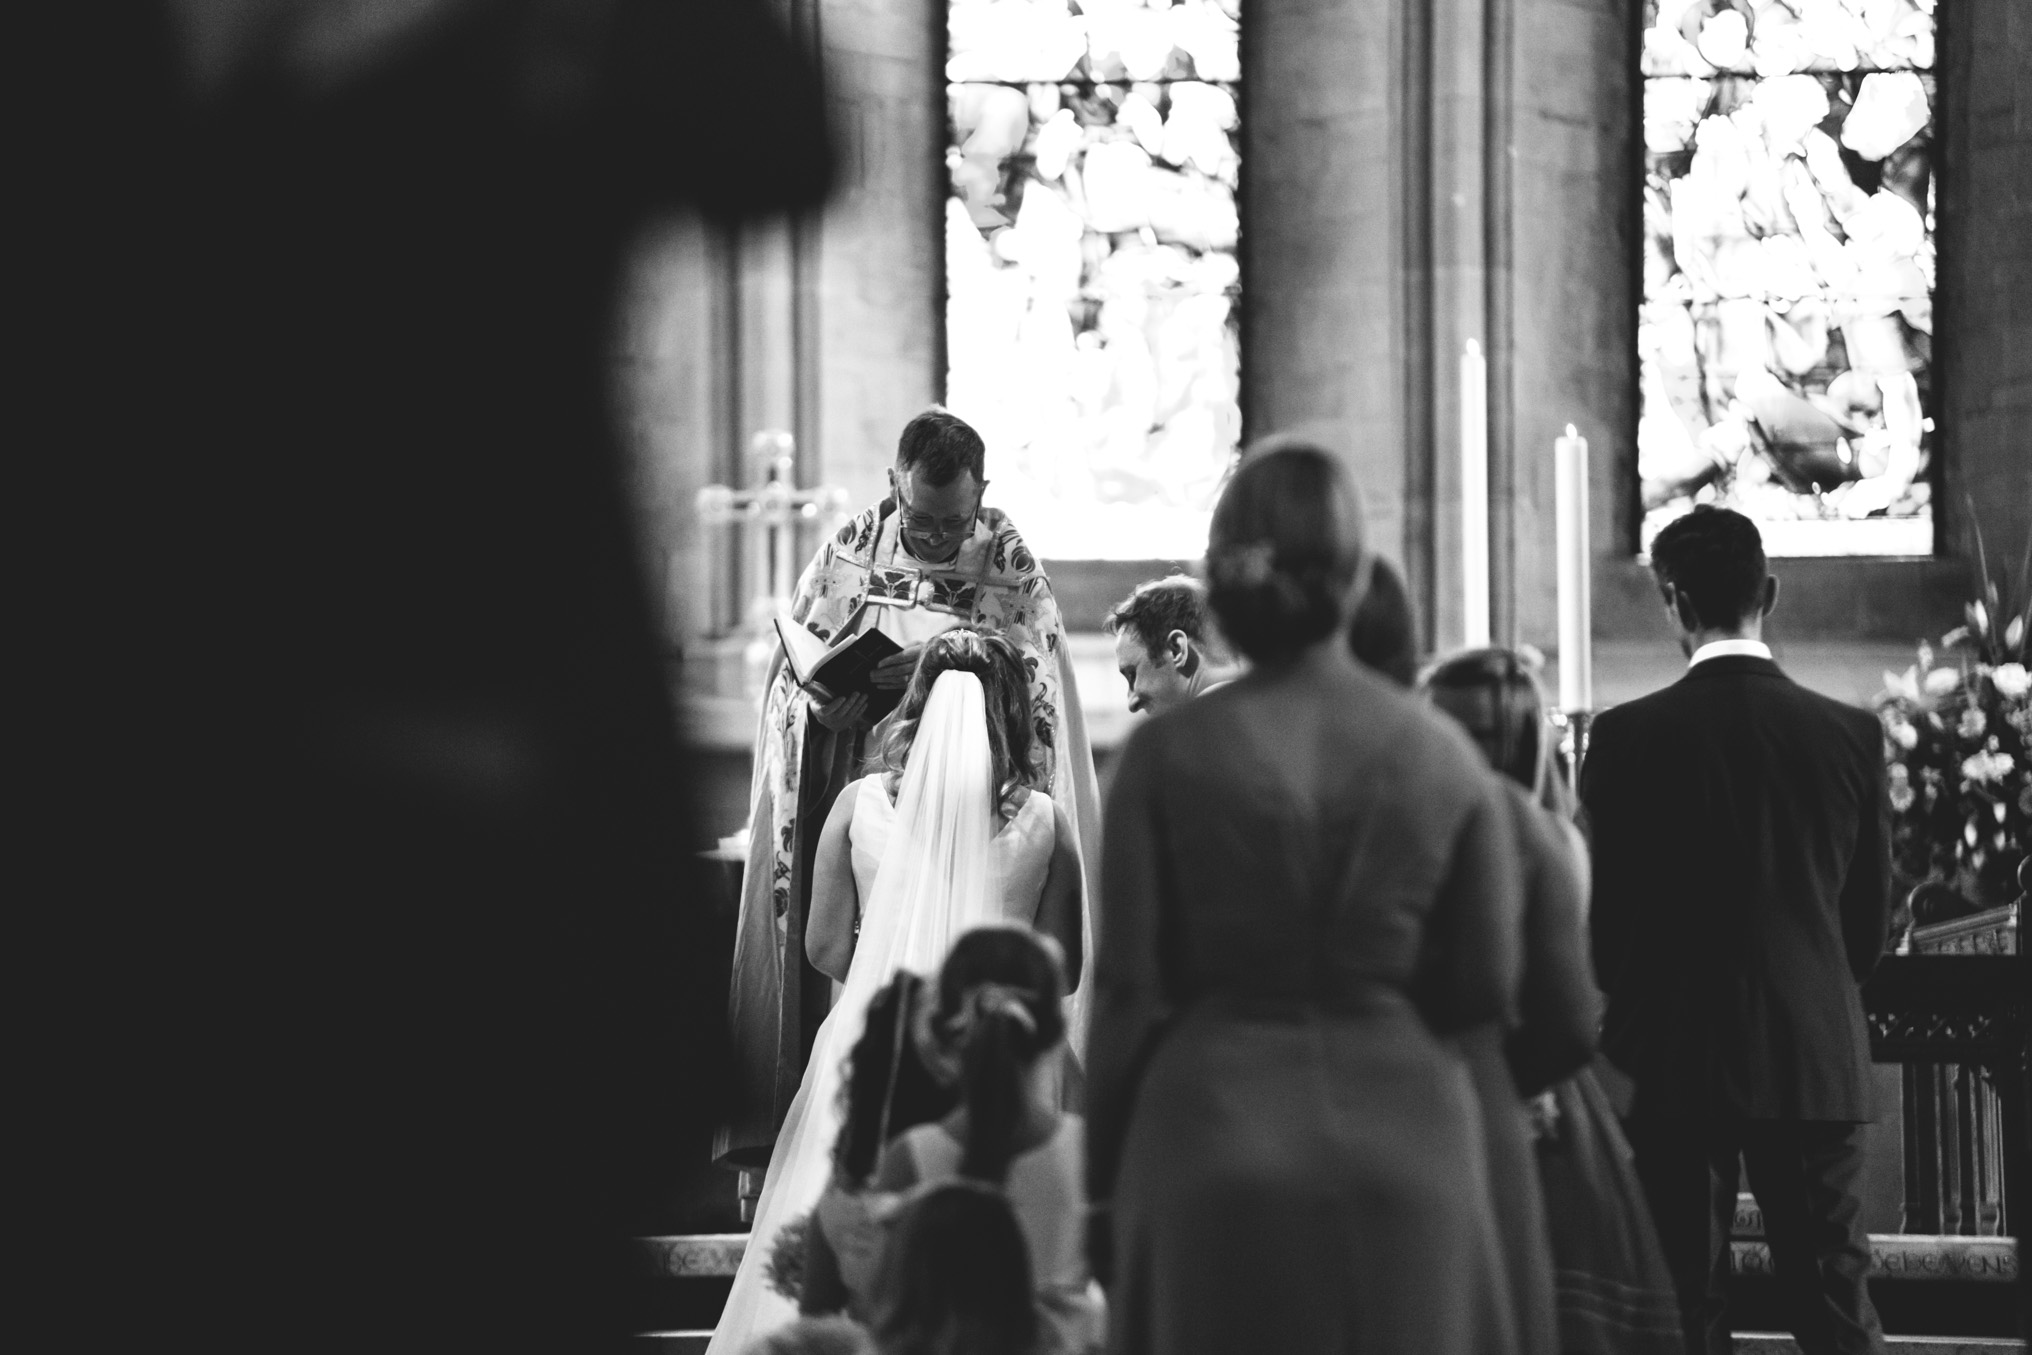 southwell-minster-wedding-34